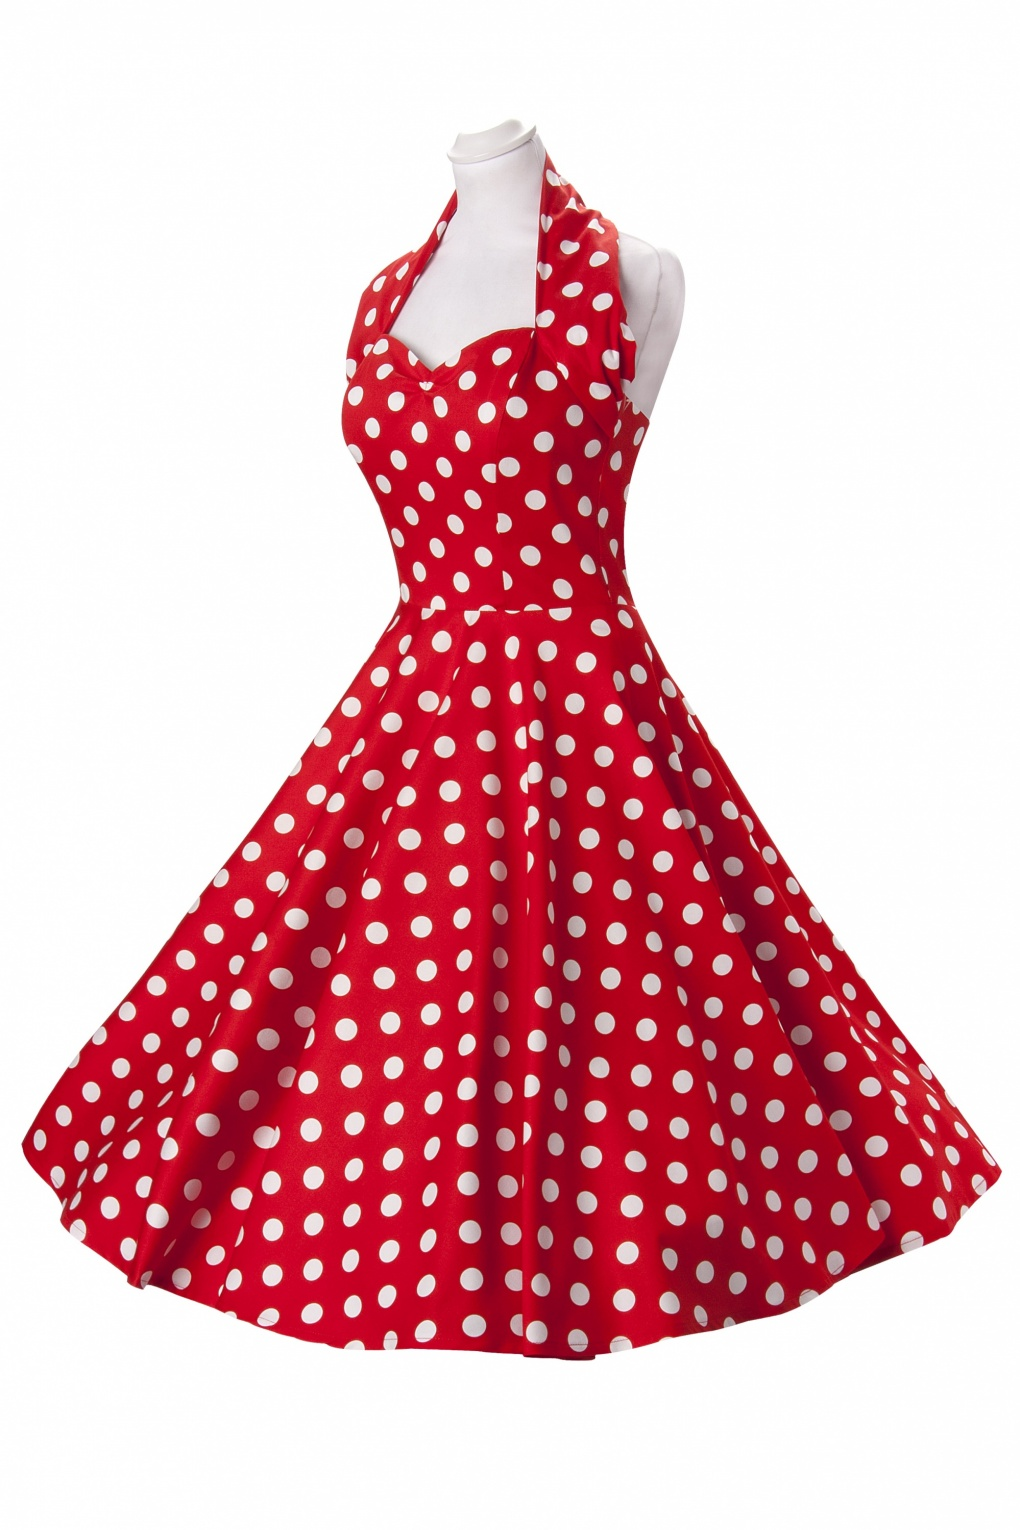 50s Retro halter Polka Dot Red White swing dress cotton sateen